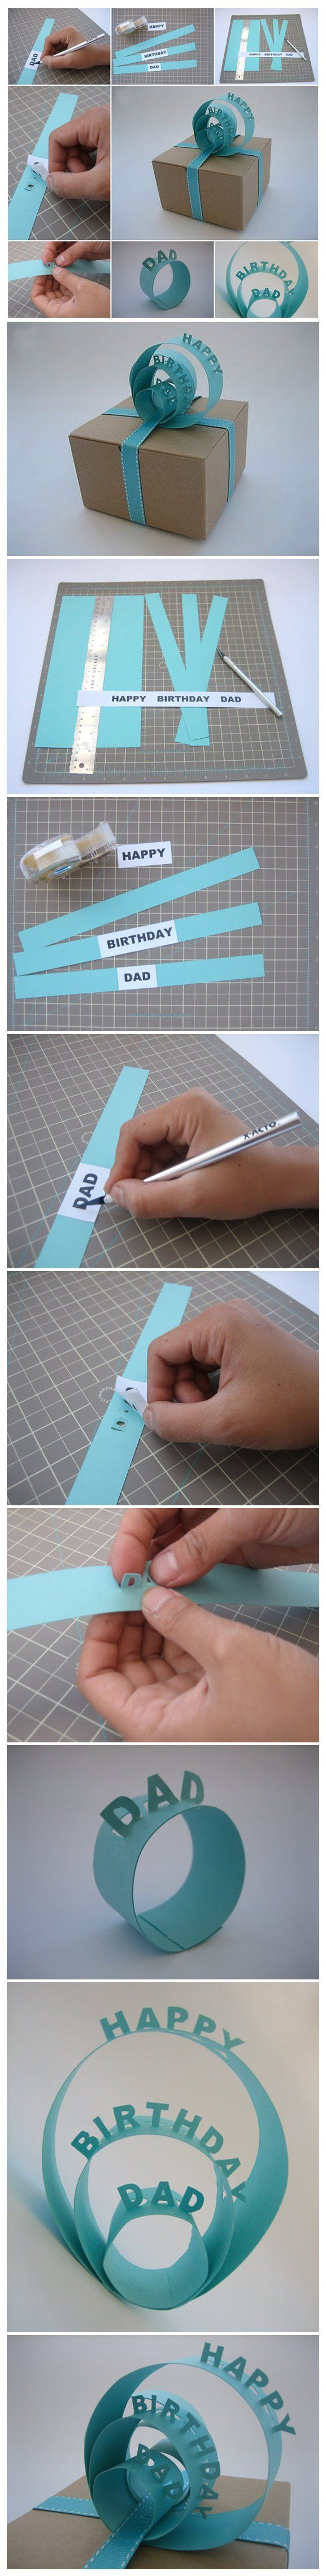 How to Make 3D Sign Gift Topper to Decorate a Gift